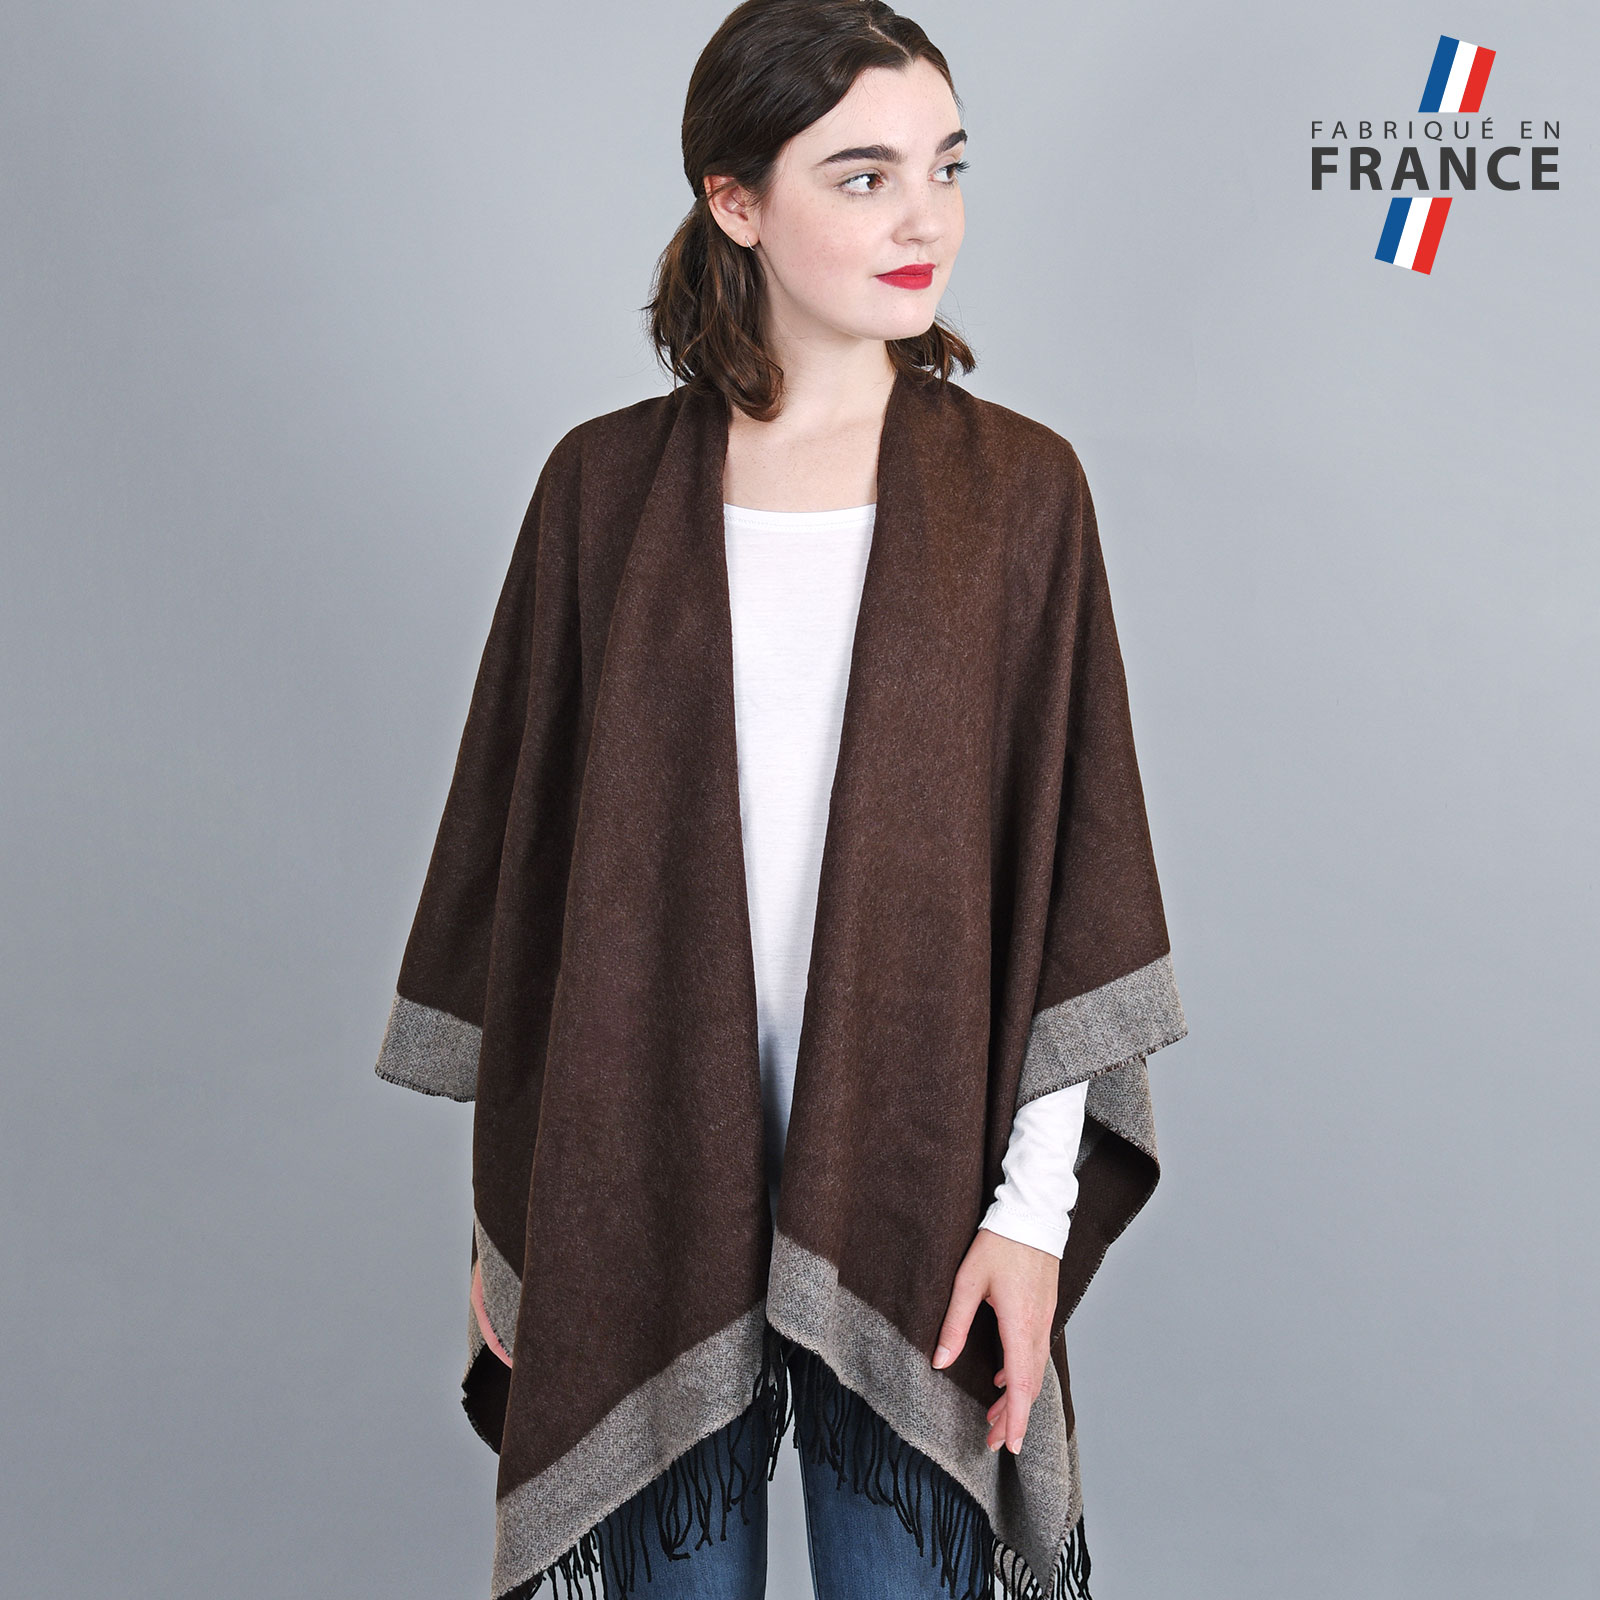 AT-03204-VF16-LB_FR-poncho-a-franges-marron-gris-fabrication-france